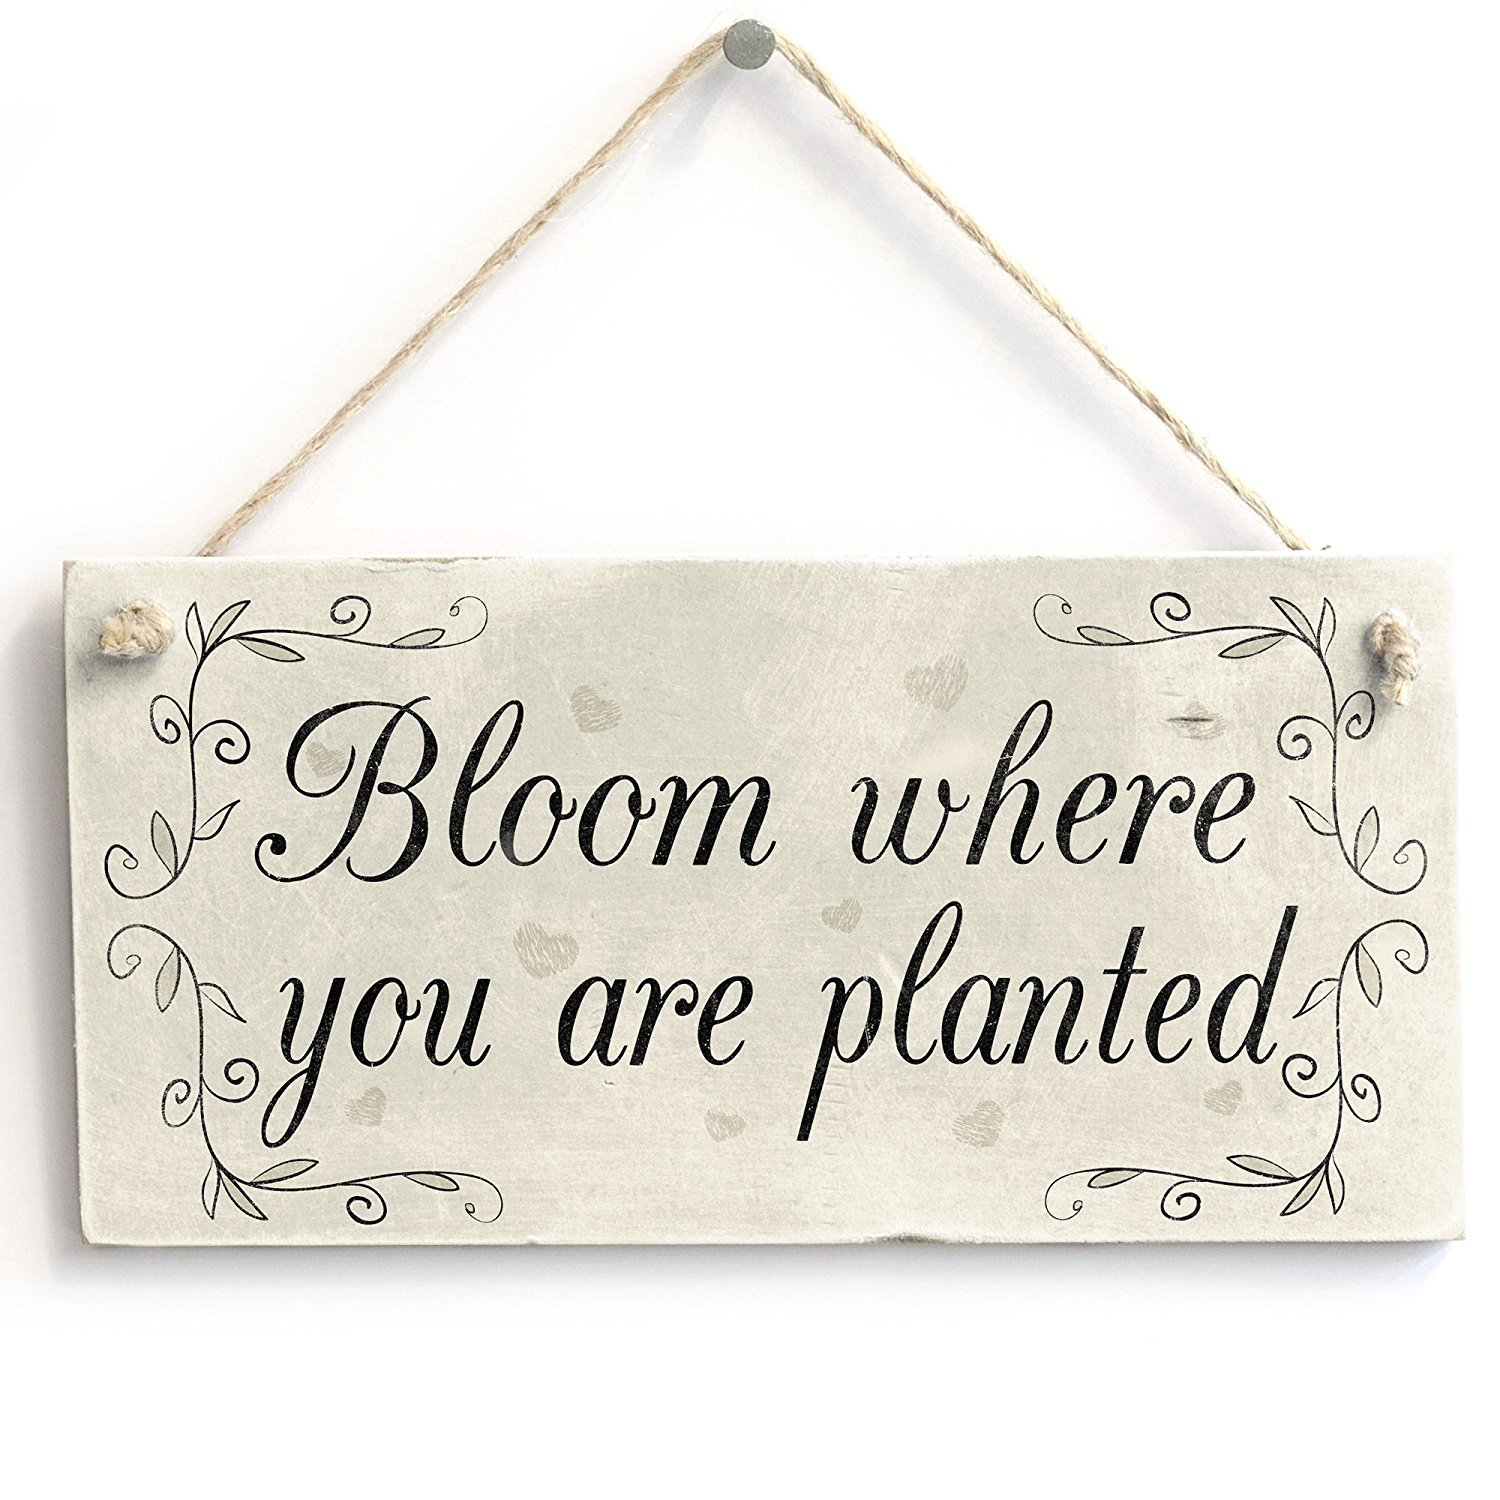 Bloom Where You Are Planted Motivational Wooden Gardening Home Decor Sign Wooden Hanging Sign 4 X 8